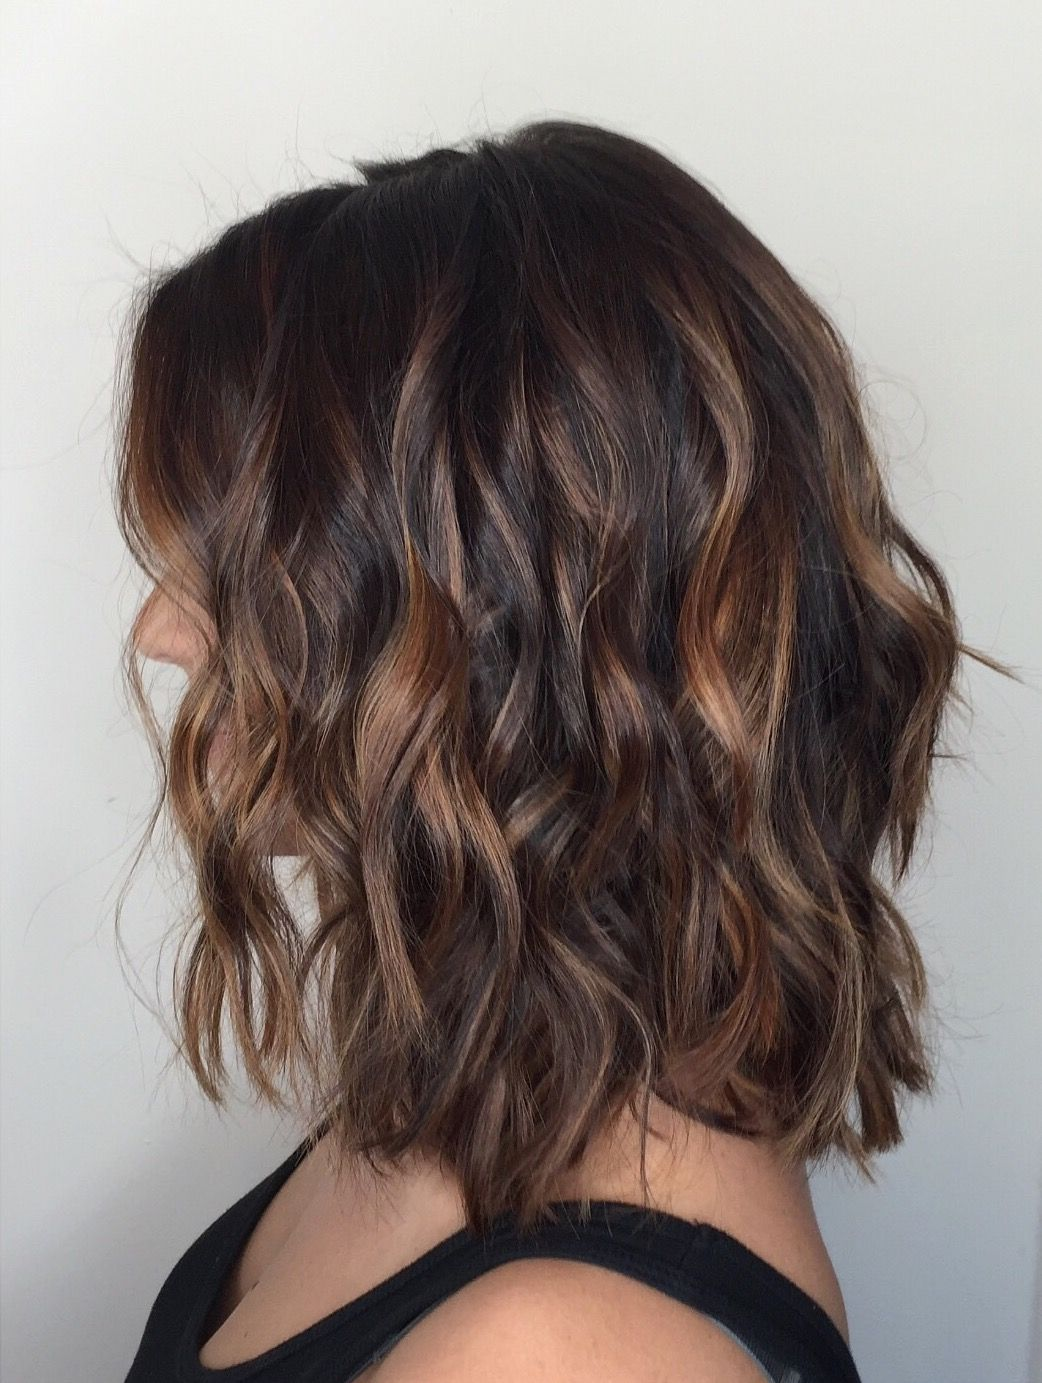 Balayage for short dark hair instagram Hairbyamanda balayage